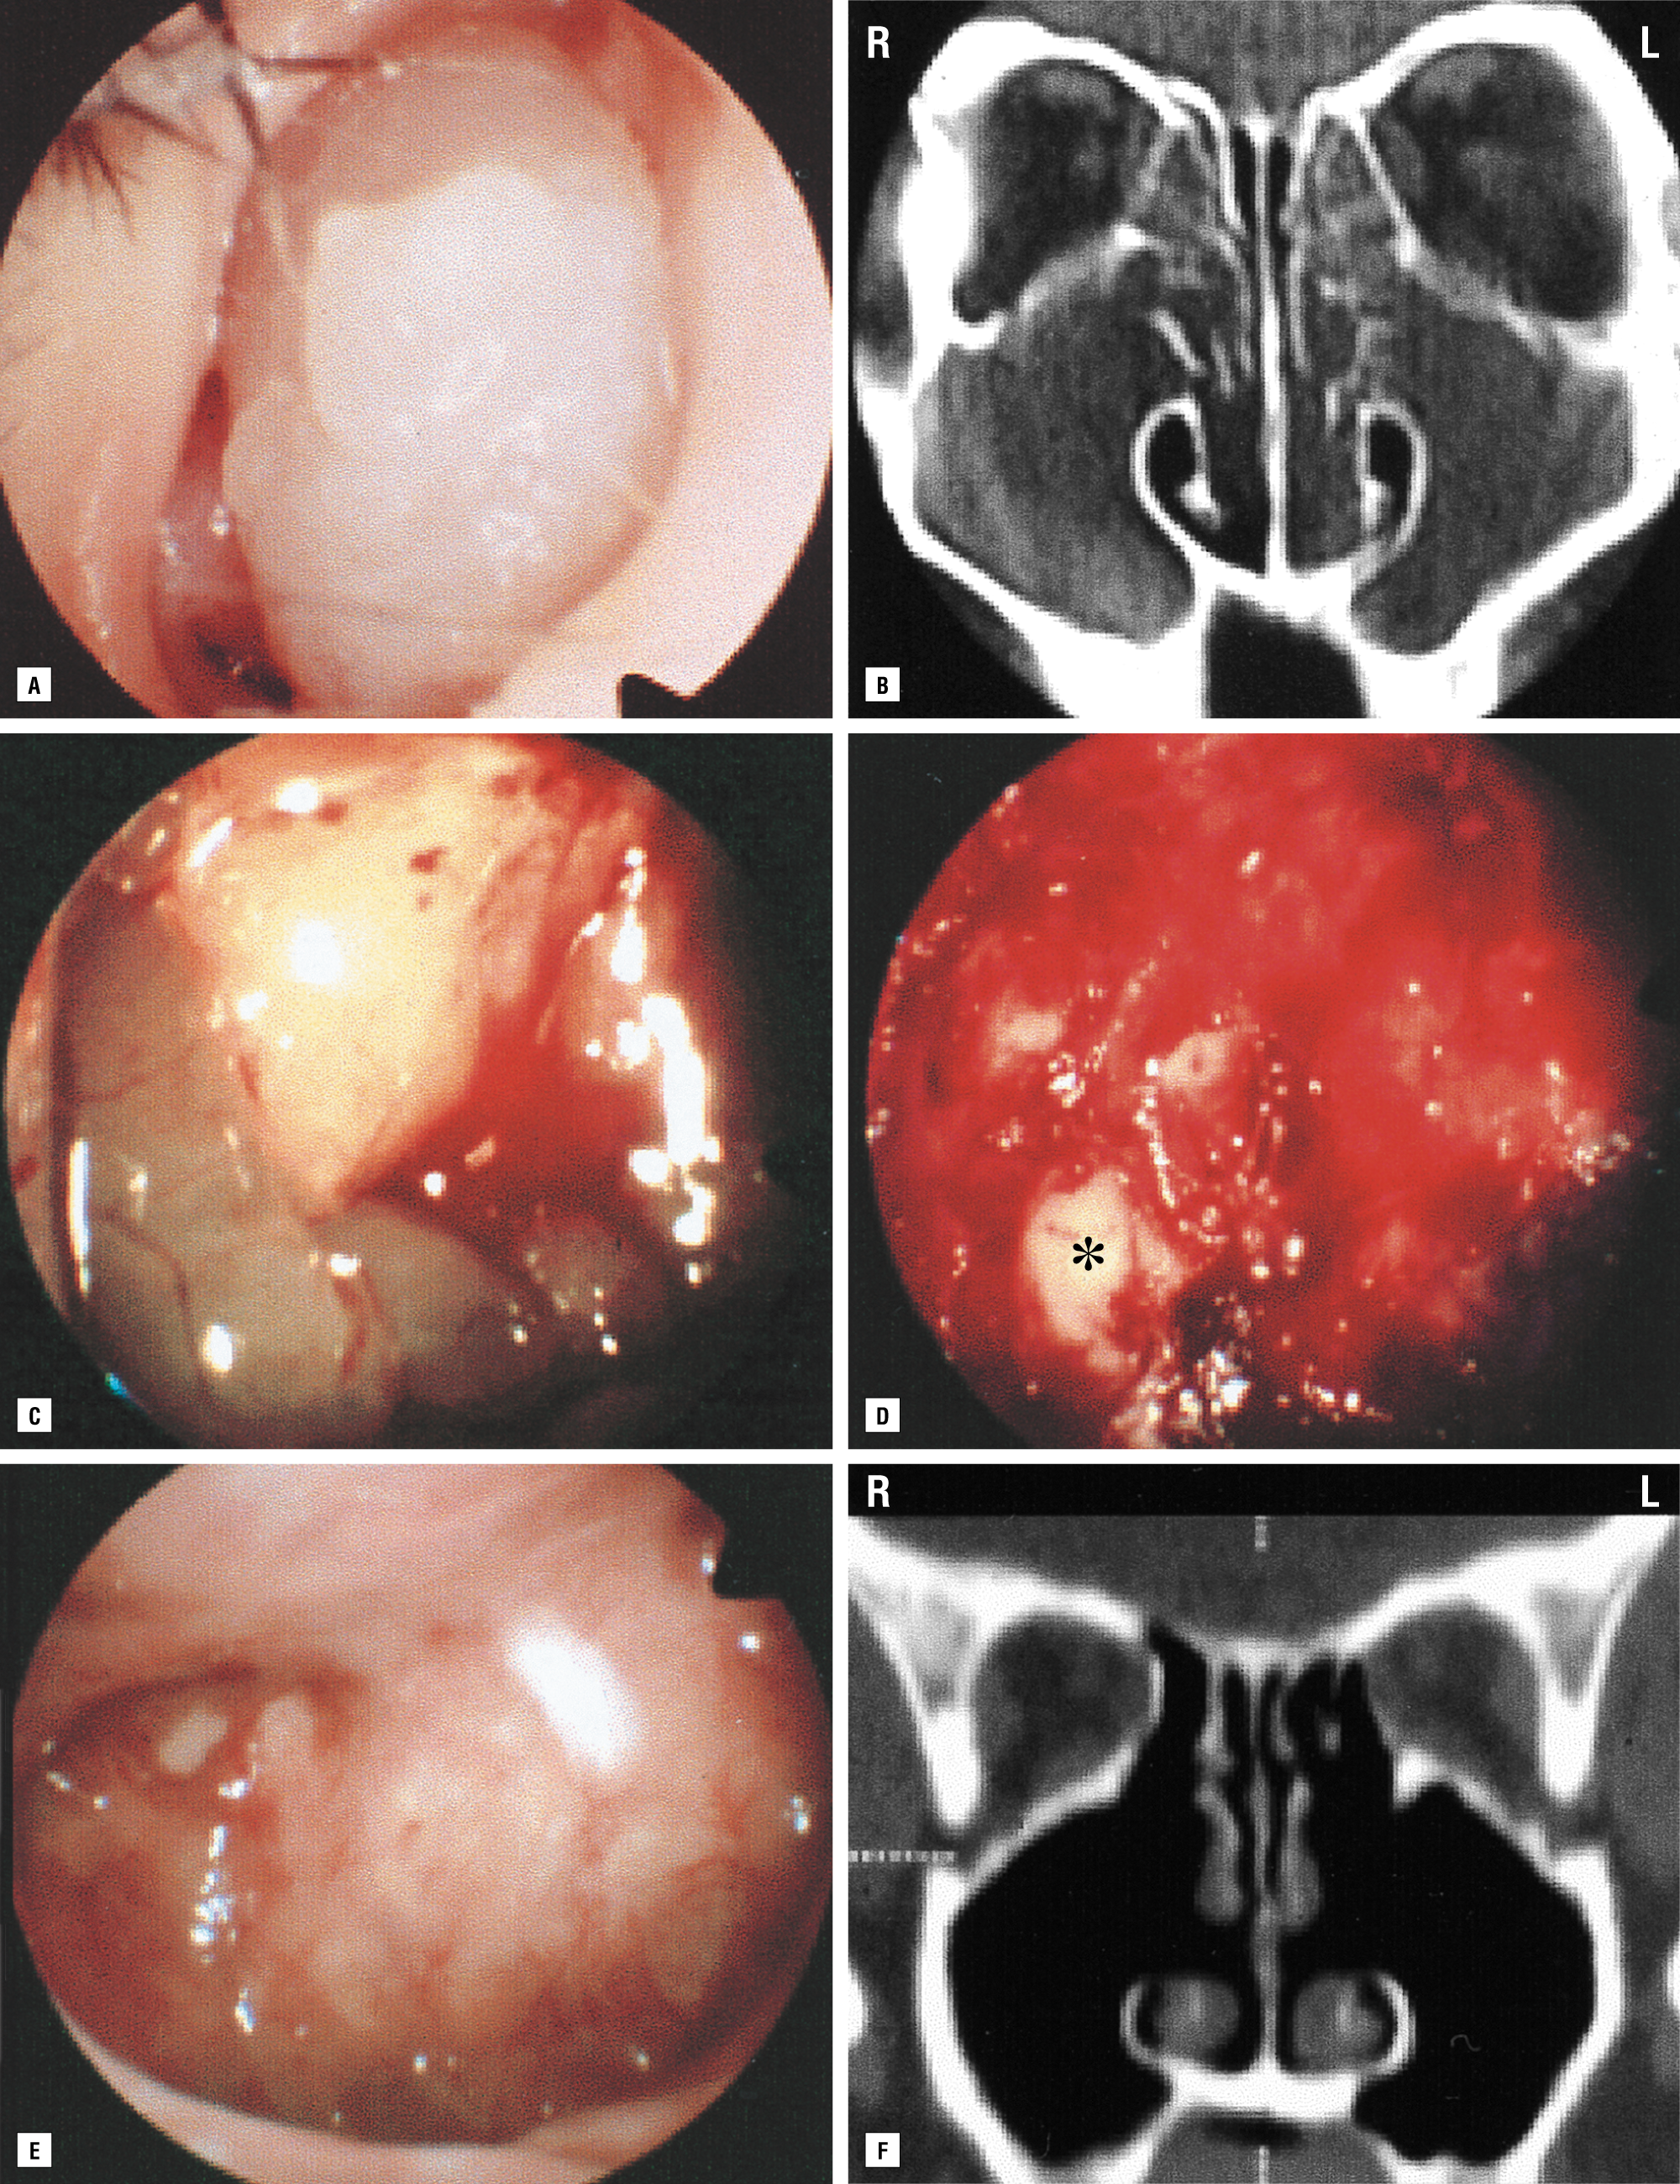 View Endoscopy Procedure: Treatment Of Intractable Diseased Tissue In The Maxillary